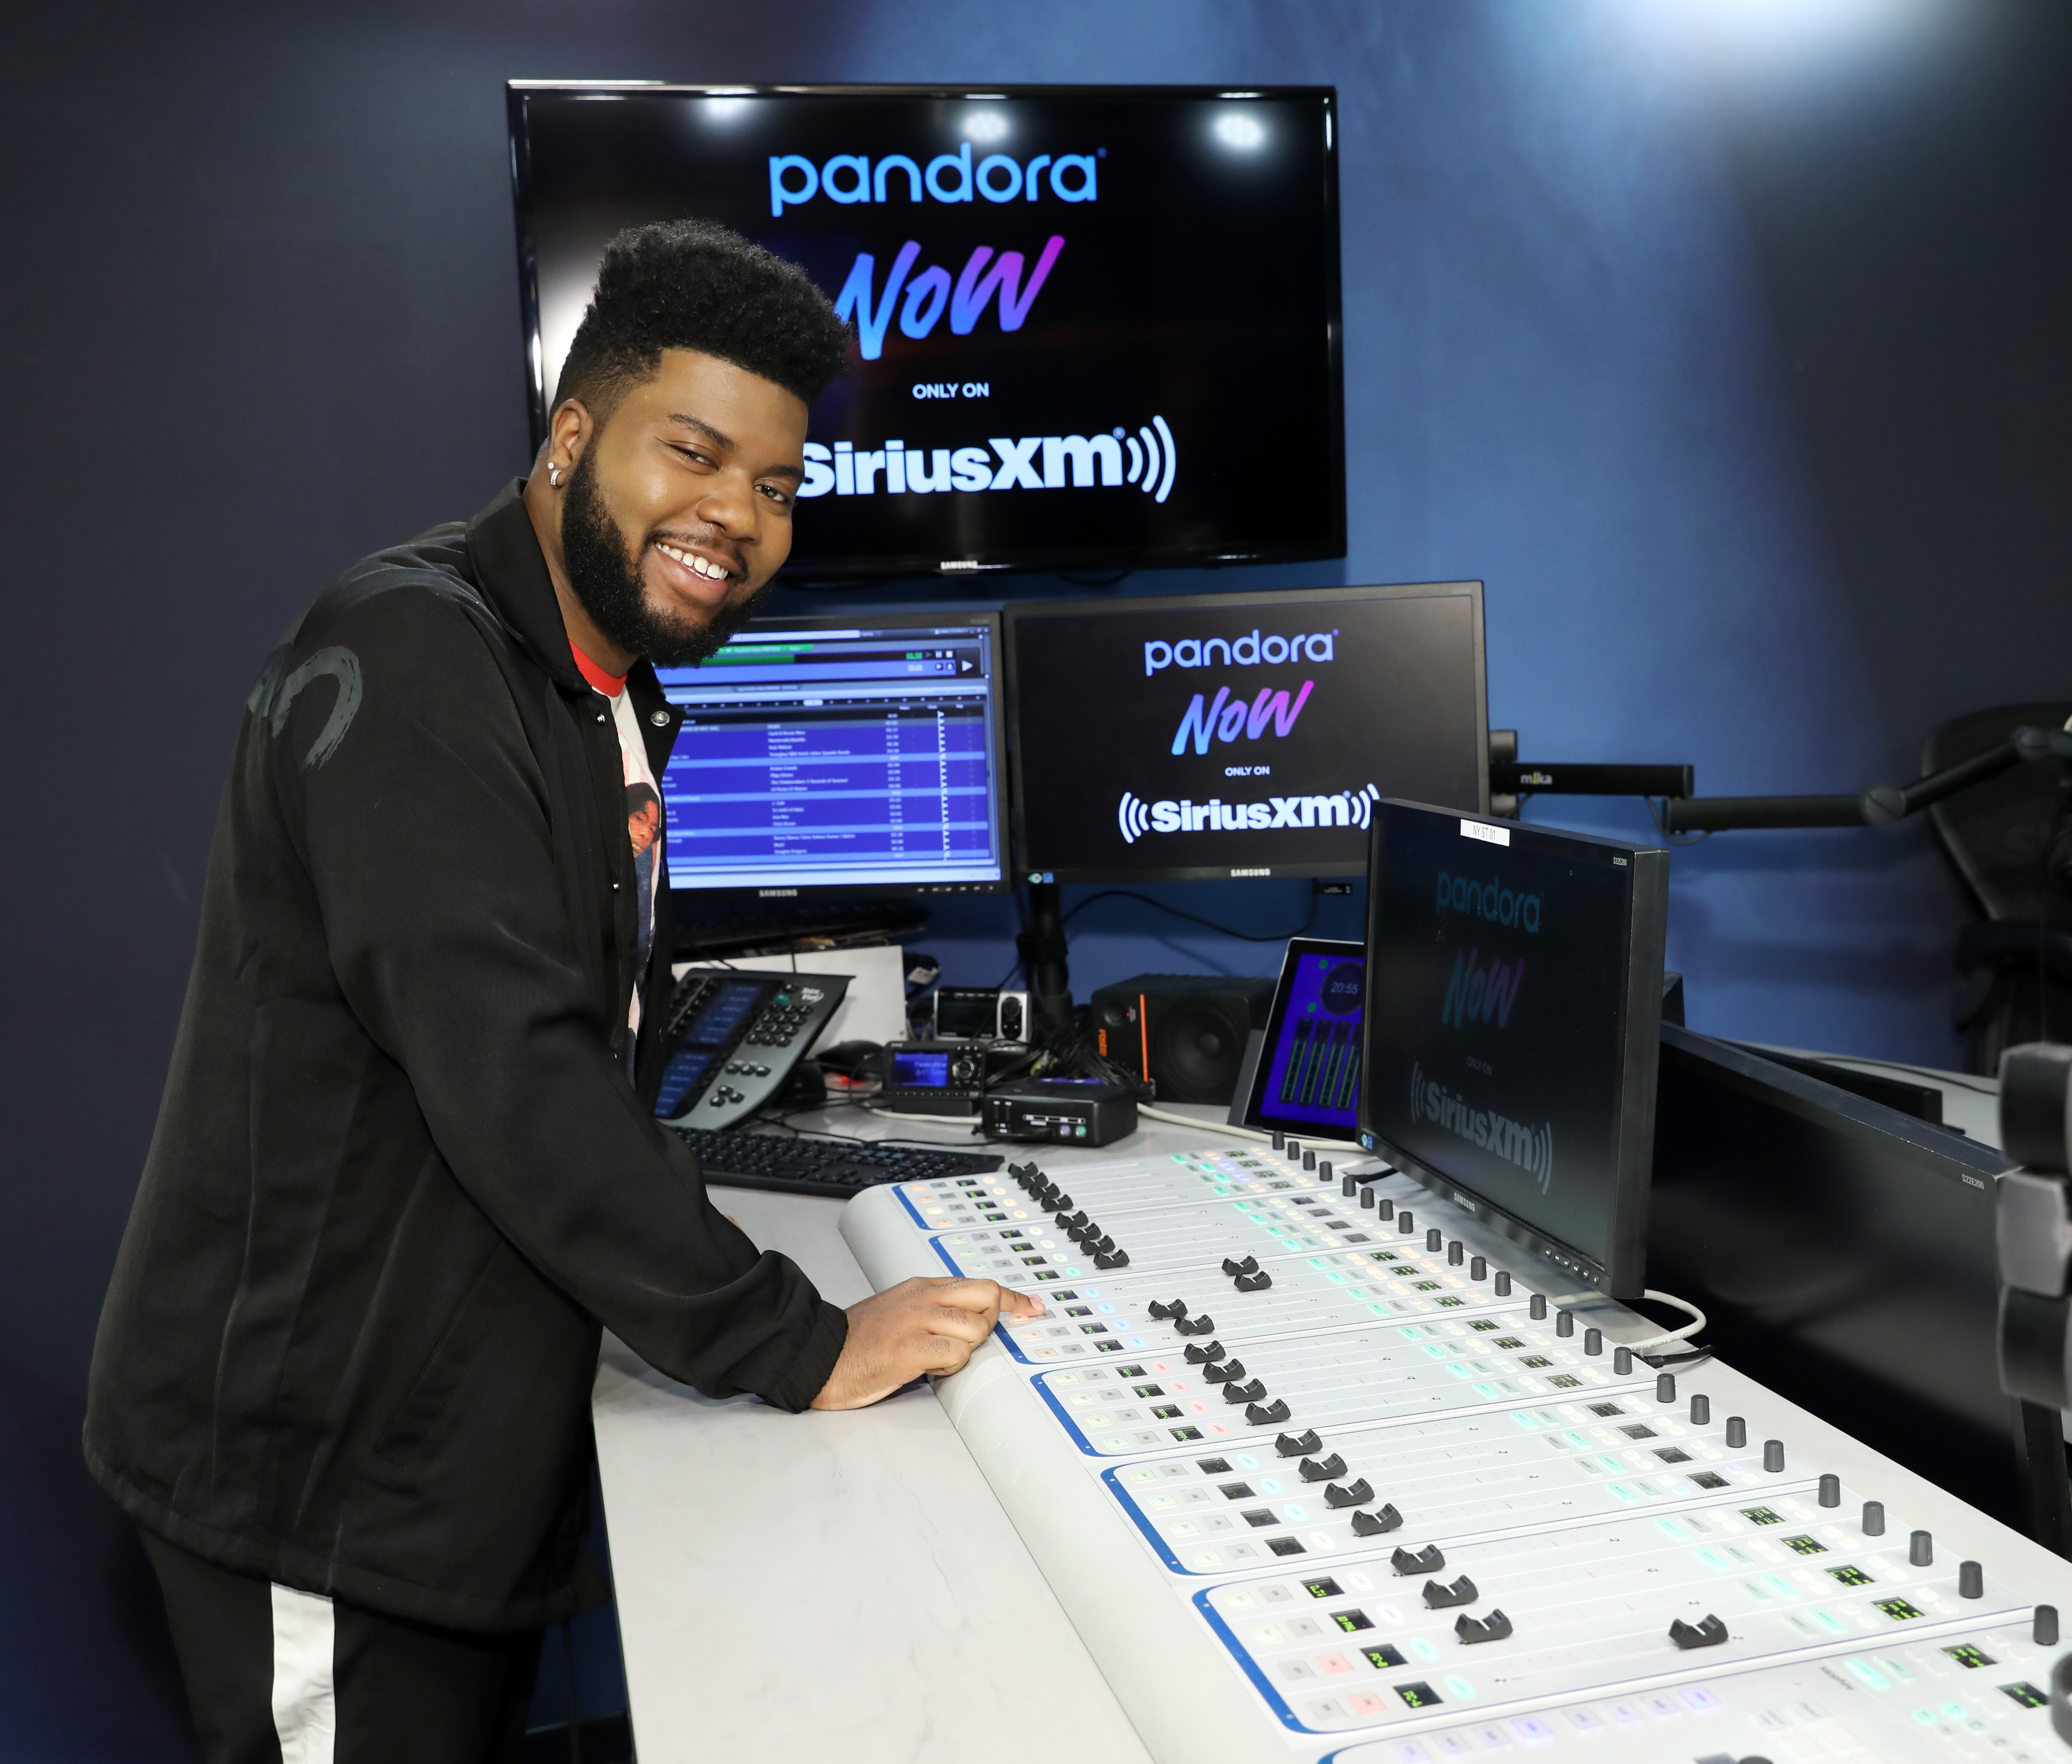 SiriusXM And Pandora Launch Pandora NOW With Khalid At The SiriusXM Studios In New York City